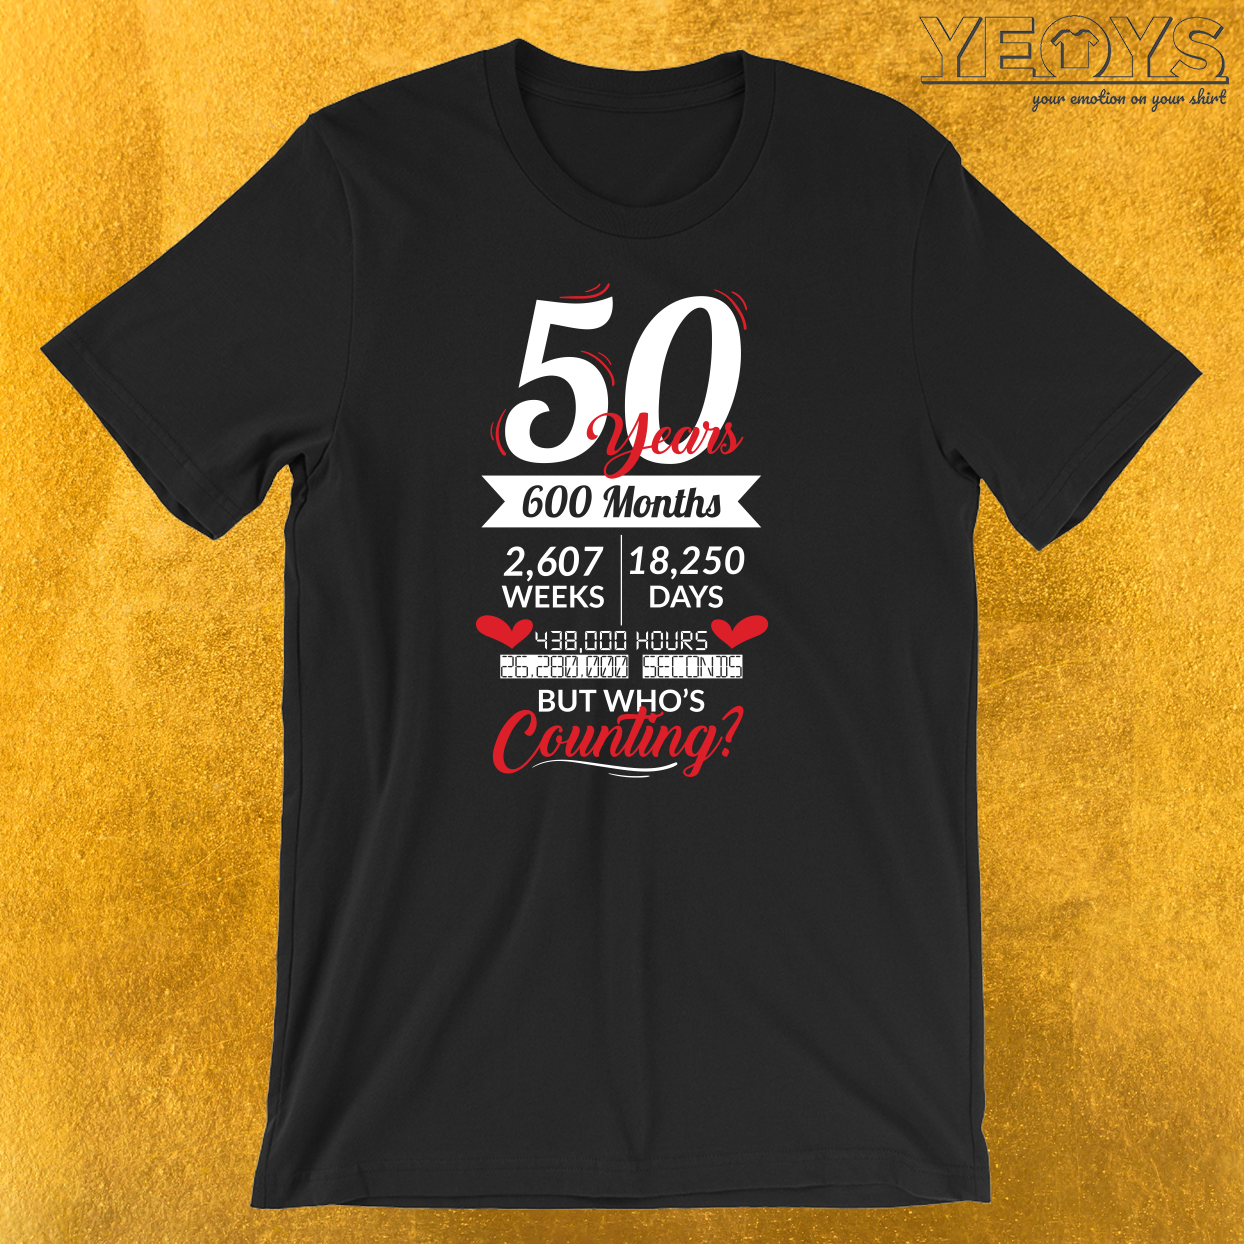 50 Years 600 Months T-Shirt